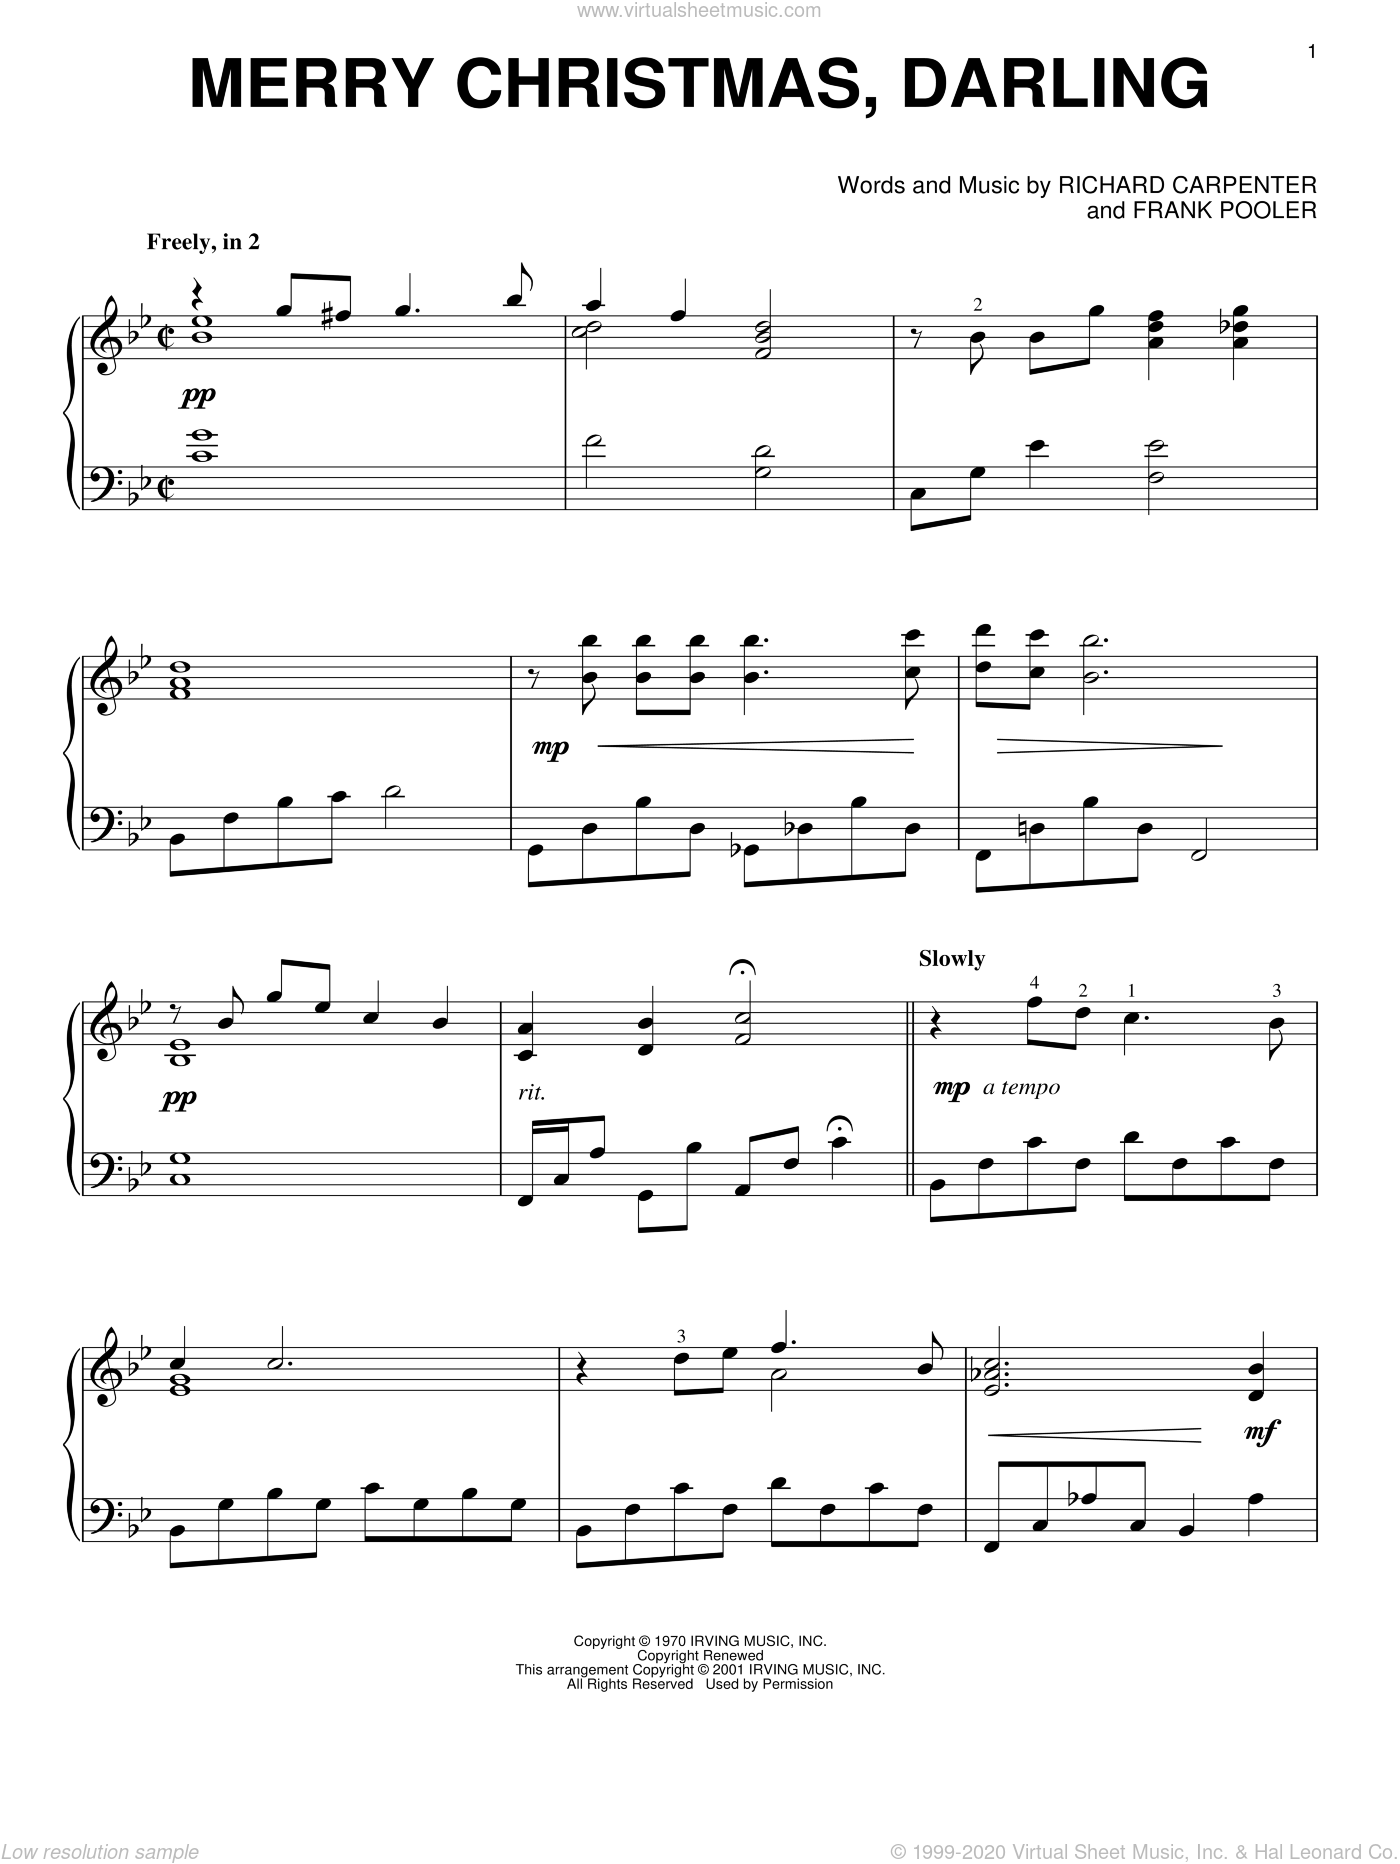 Merry Christmas, Darling sheet music for piano solo by Carpenters, Frank Pooler and Richard Carpenter, intermediate skill level